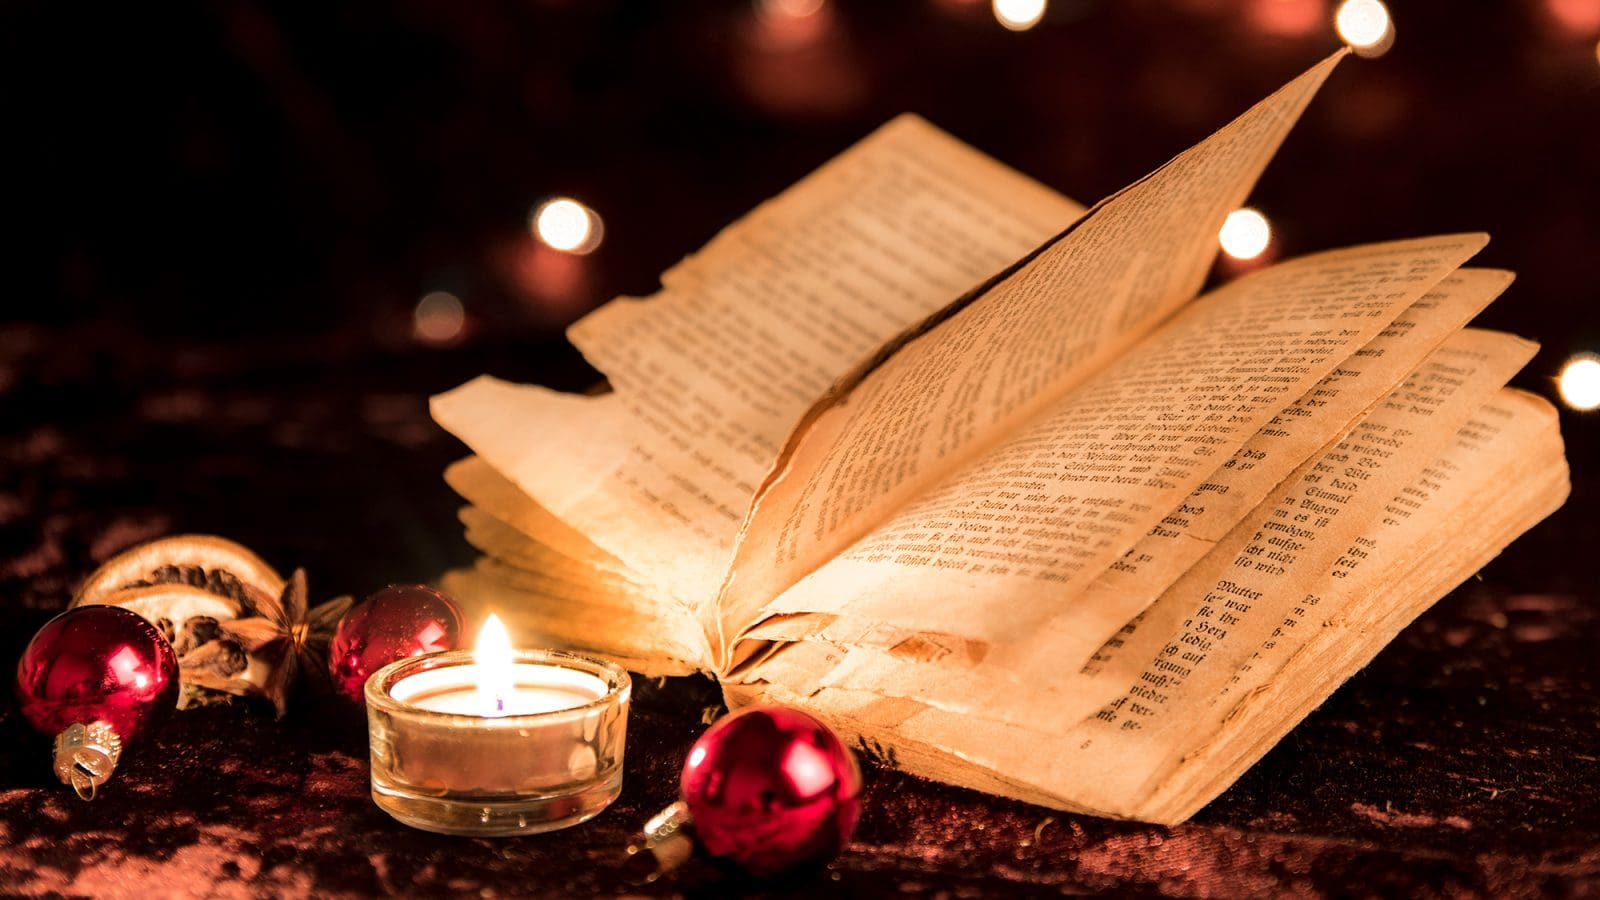 What Is the Meaning of Christmas? The Origin and History